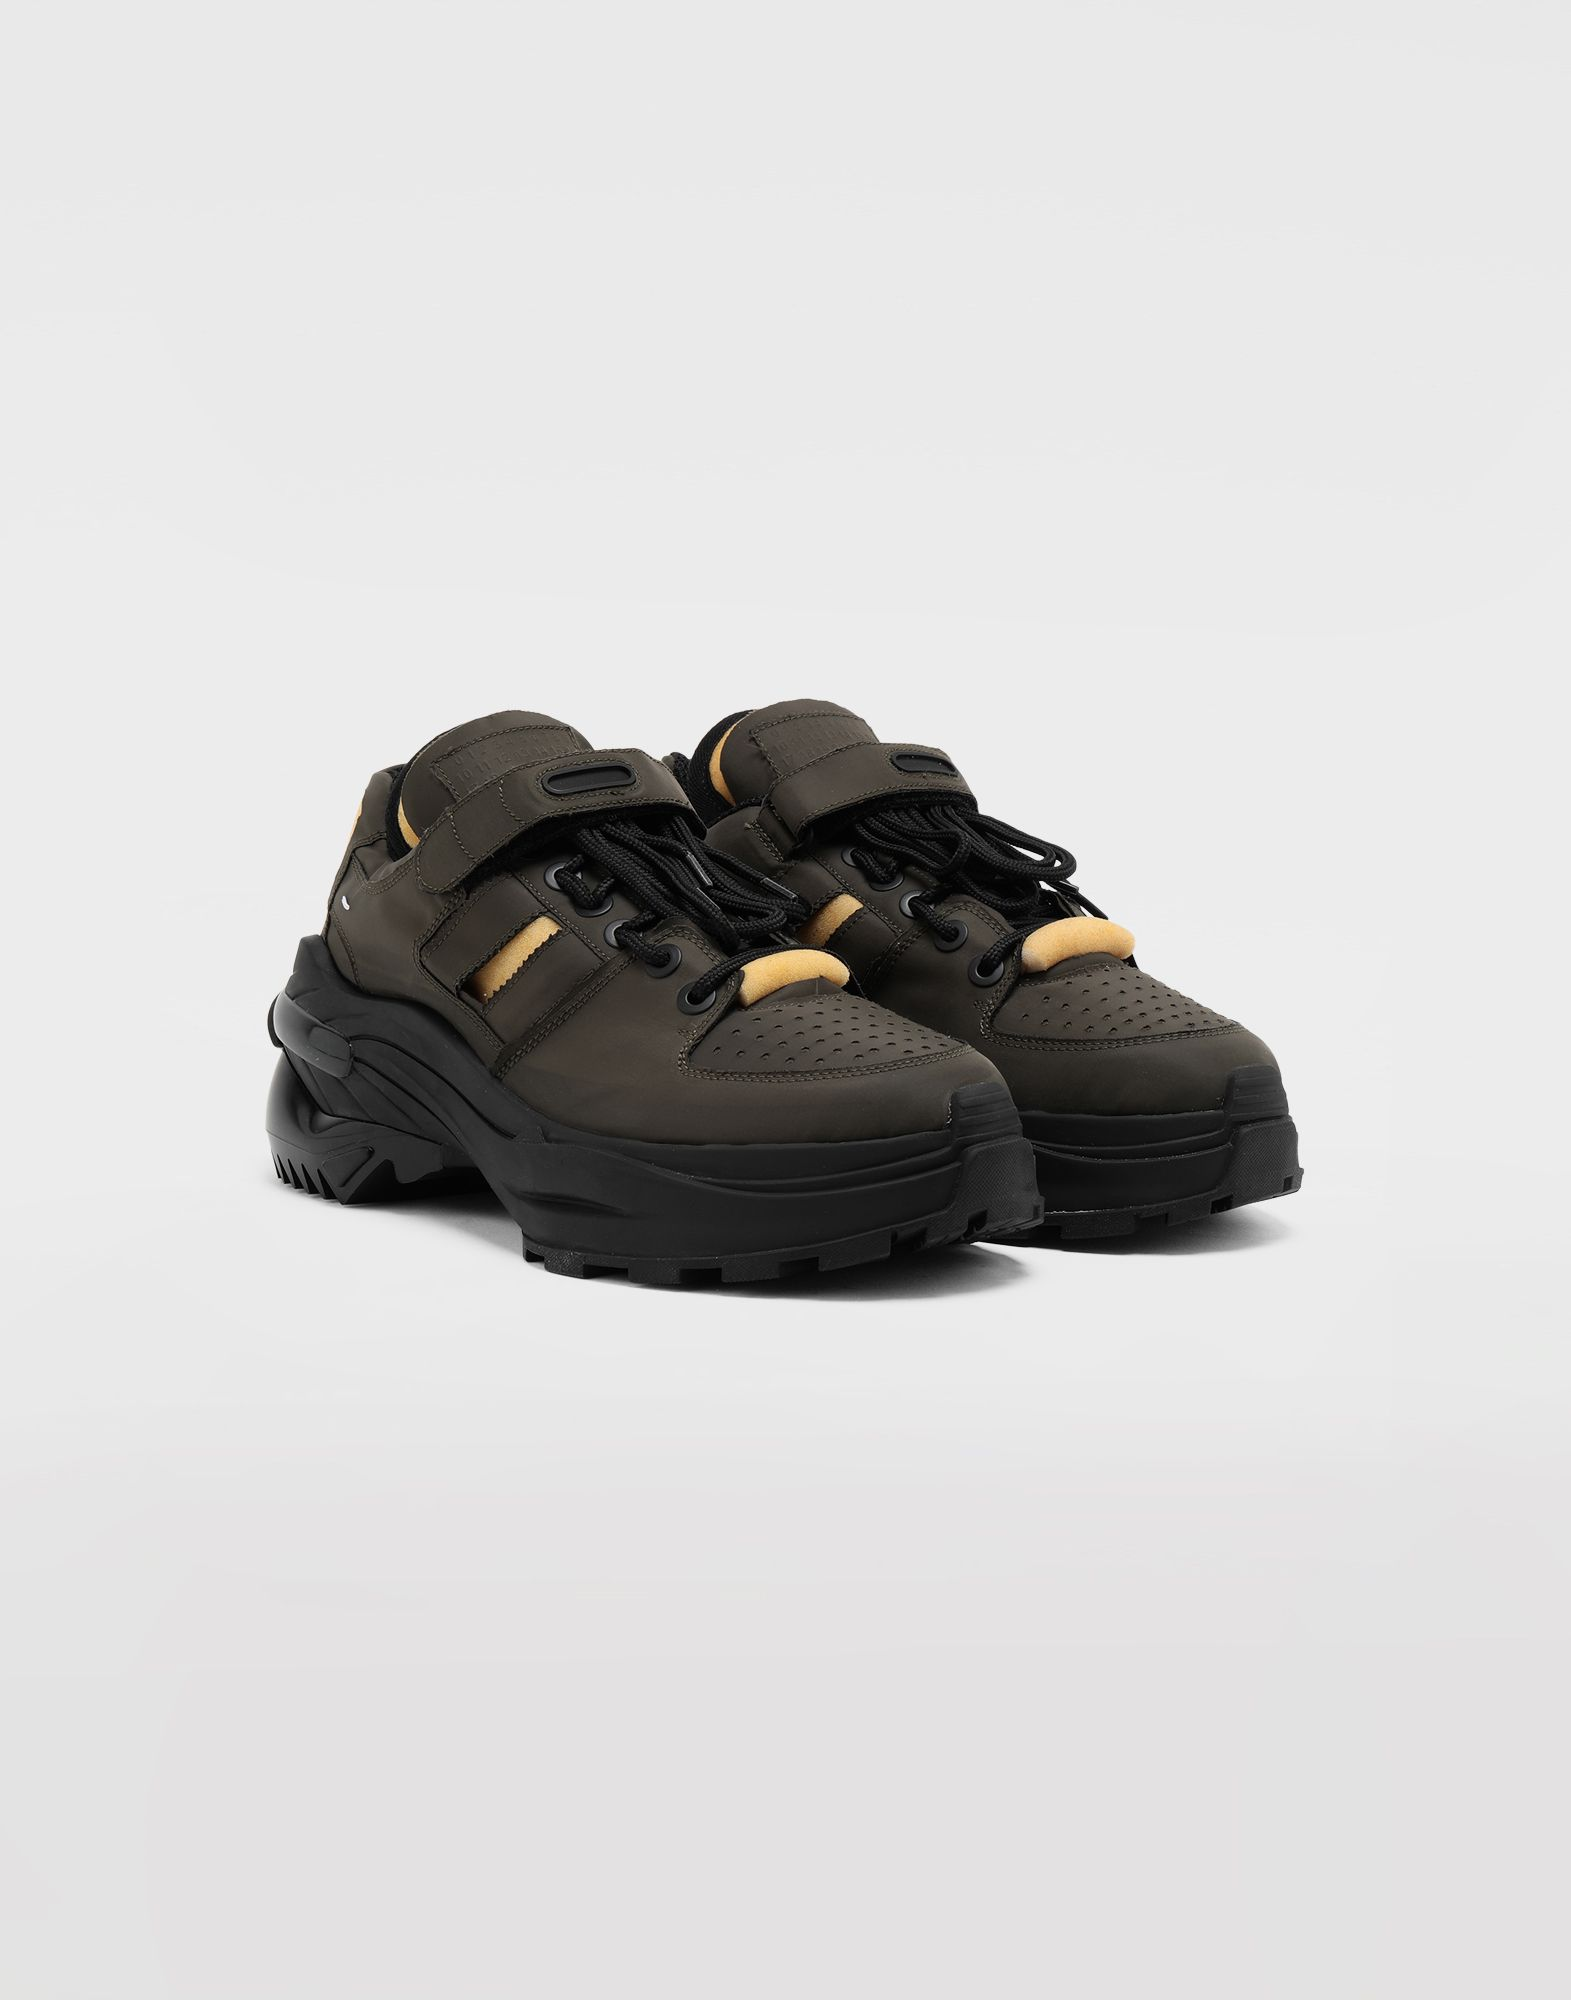 MAISON MARGIELA Retro Fit sneakers Sneakers Man d